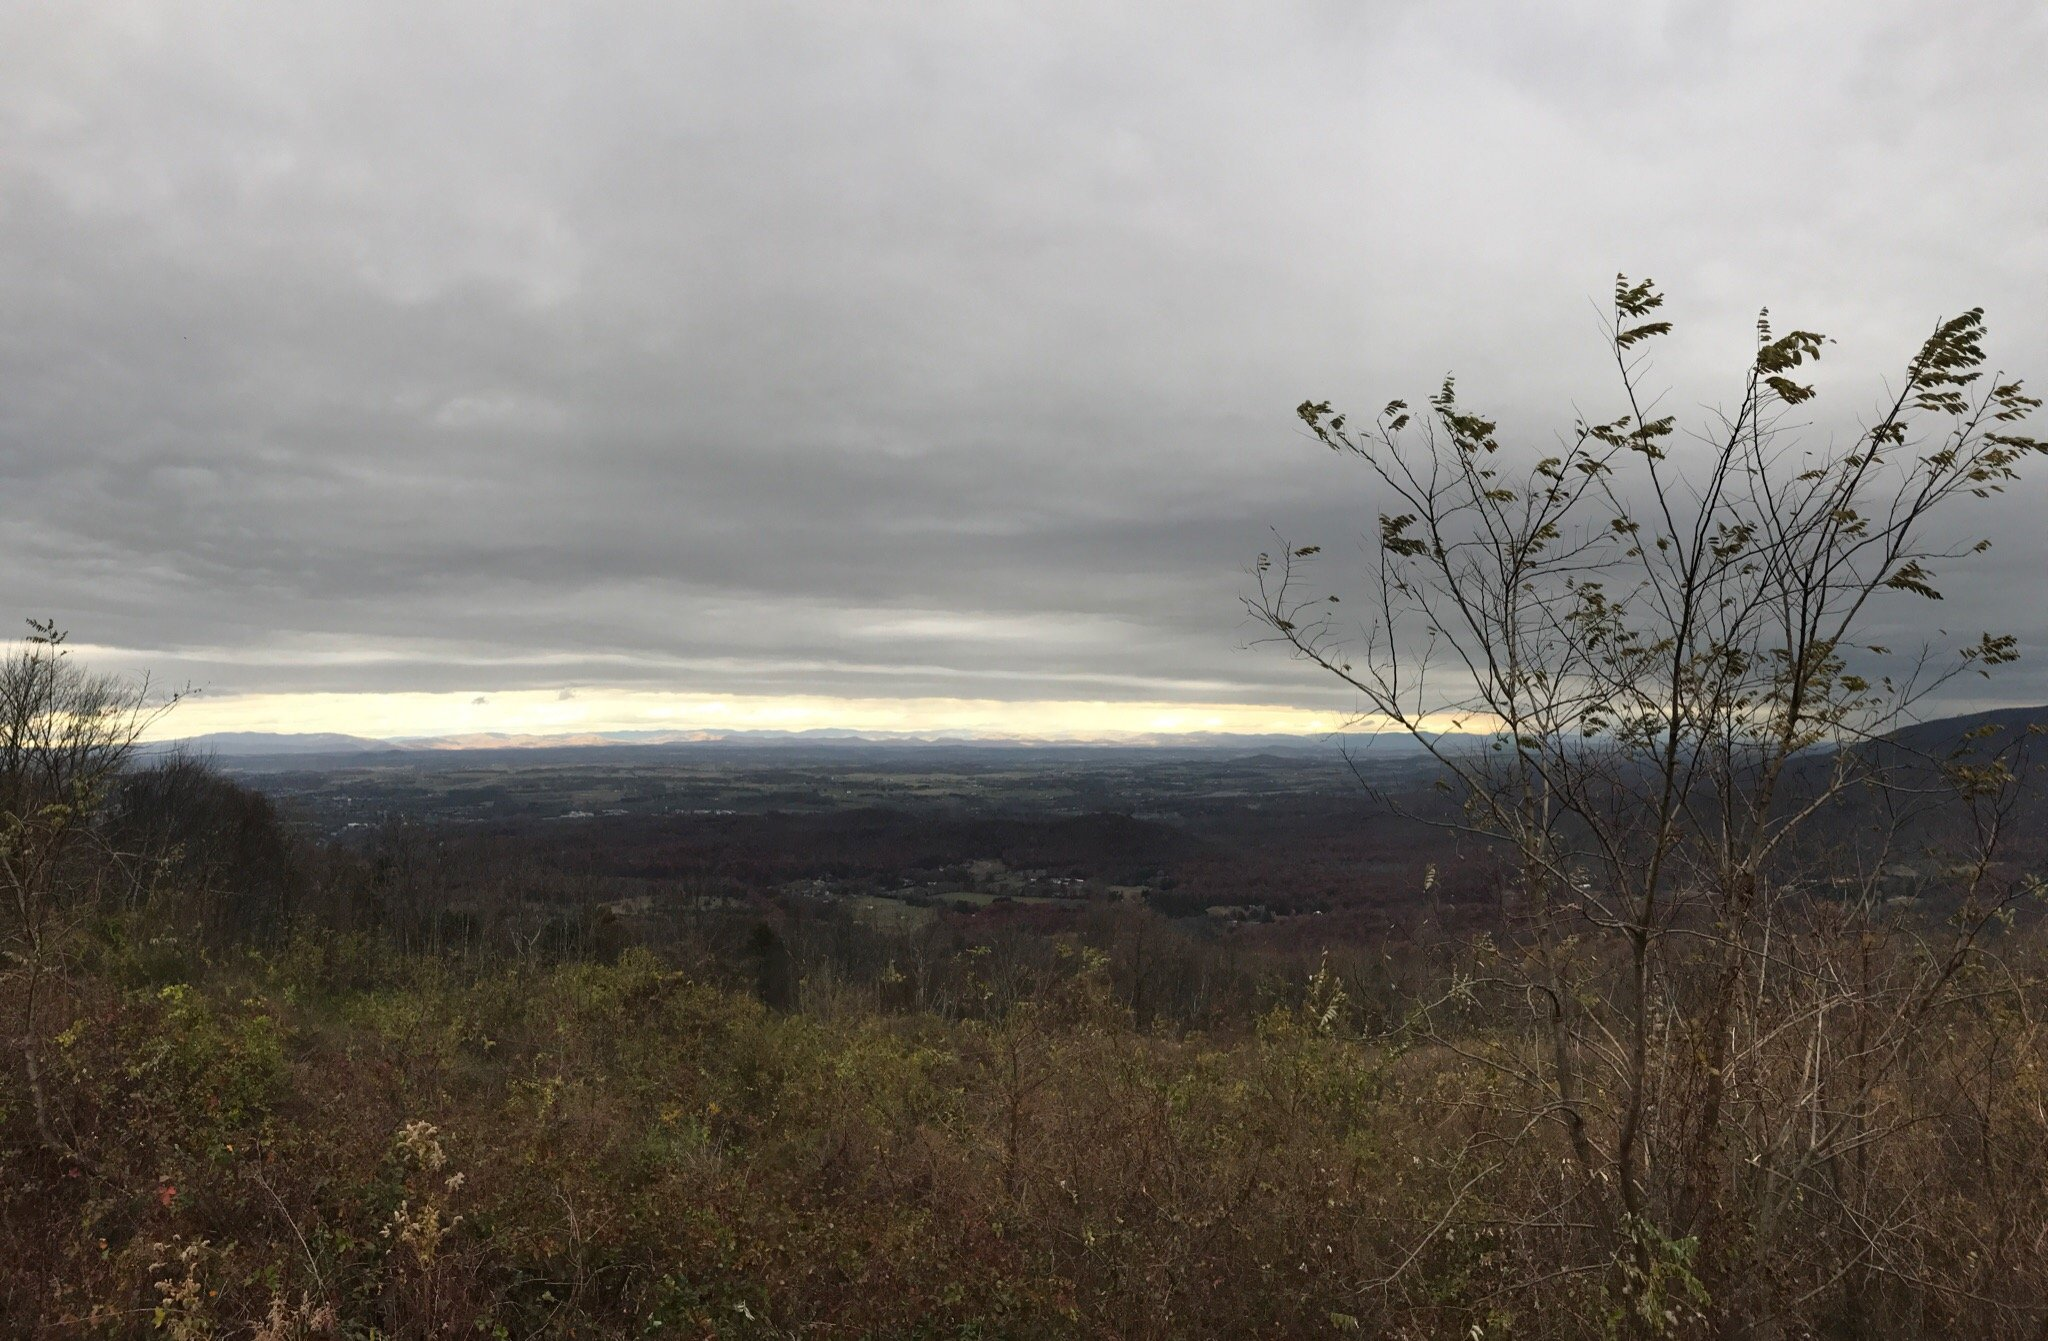 Shenandoah has some of the most beautiful views i have seen in a long time. I love this place